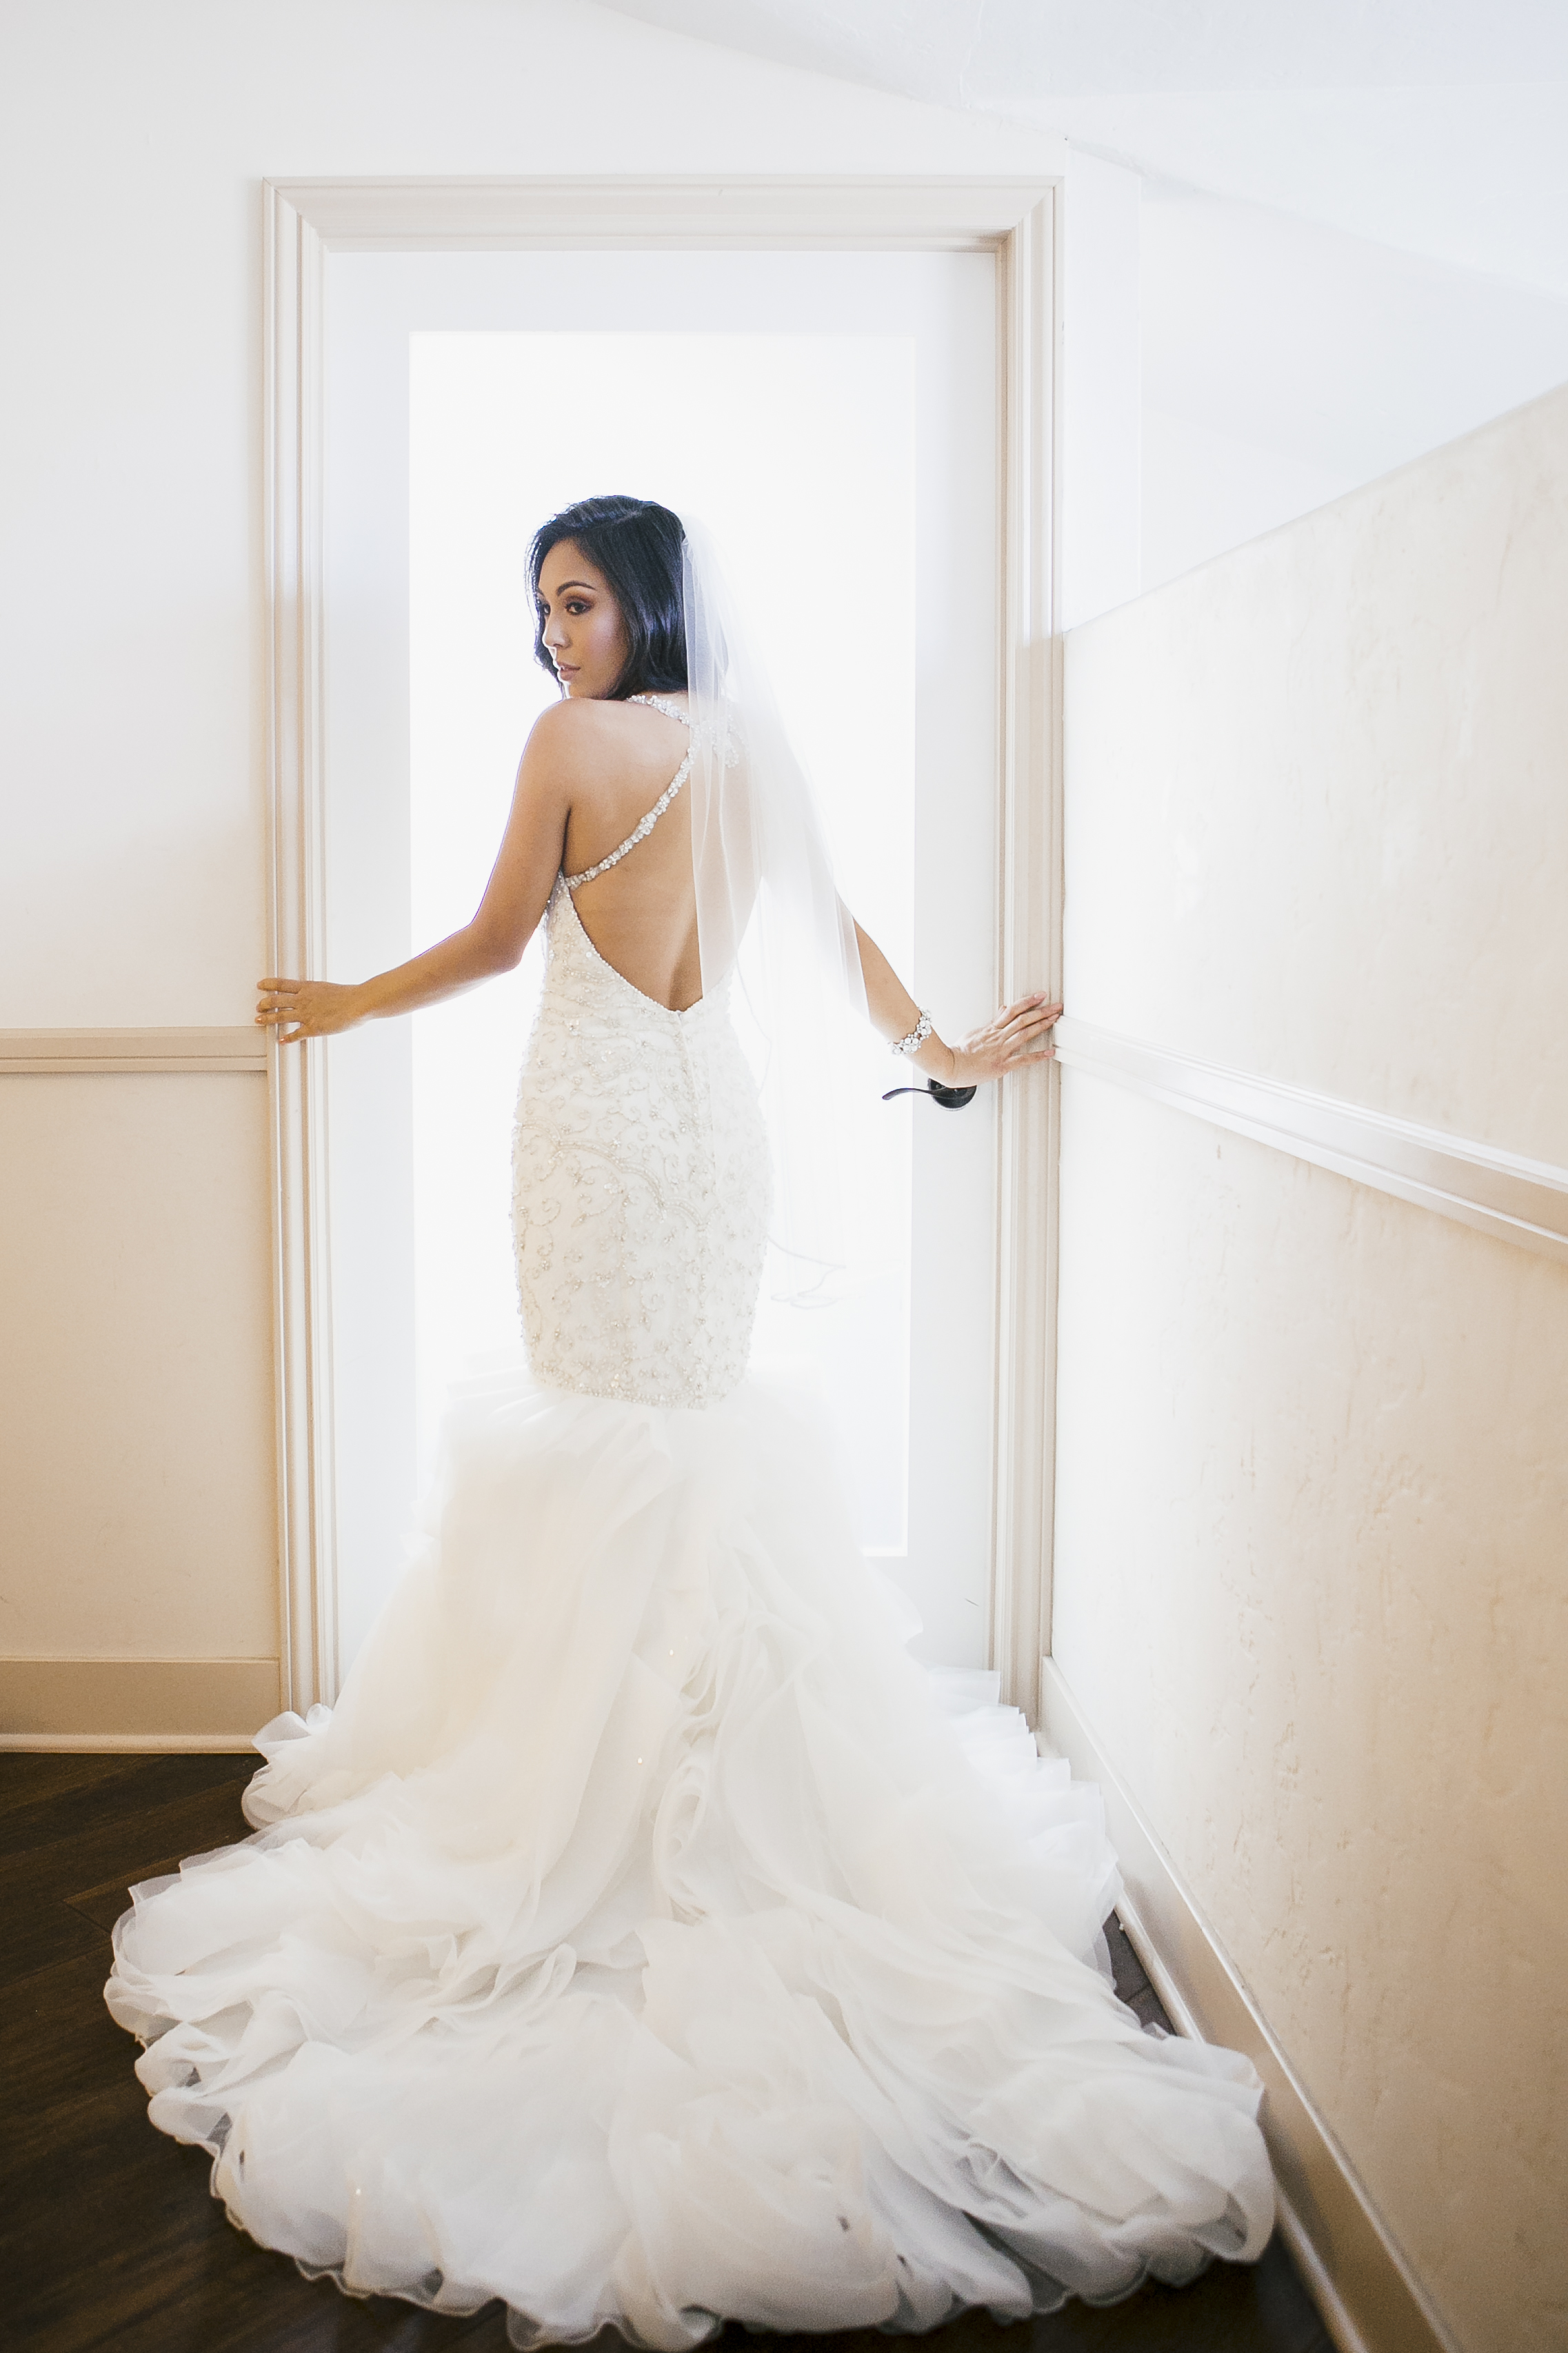 glamorous bride on her wedding day